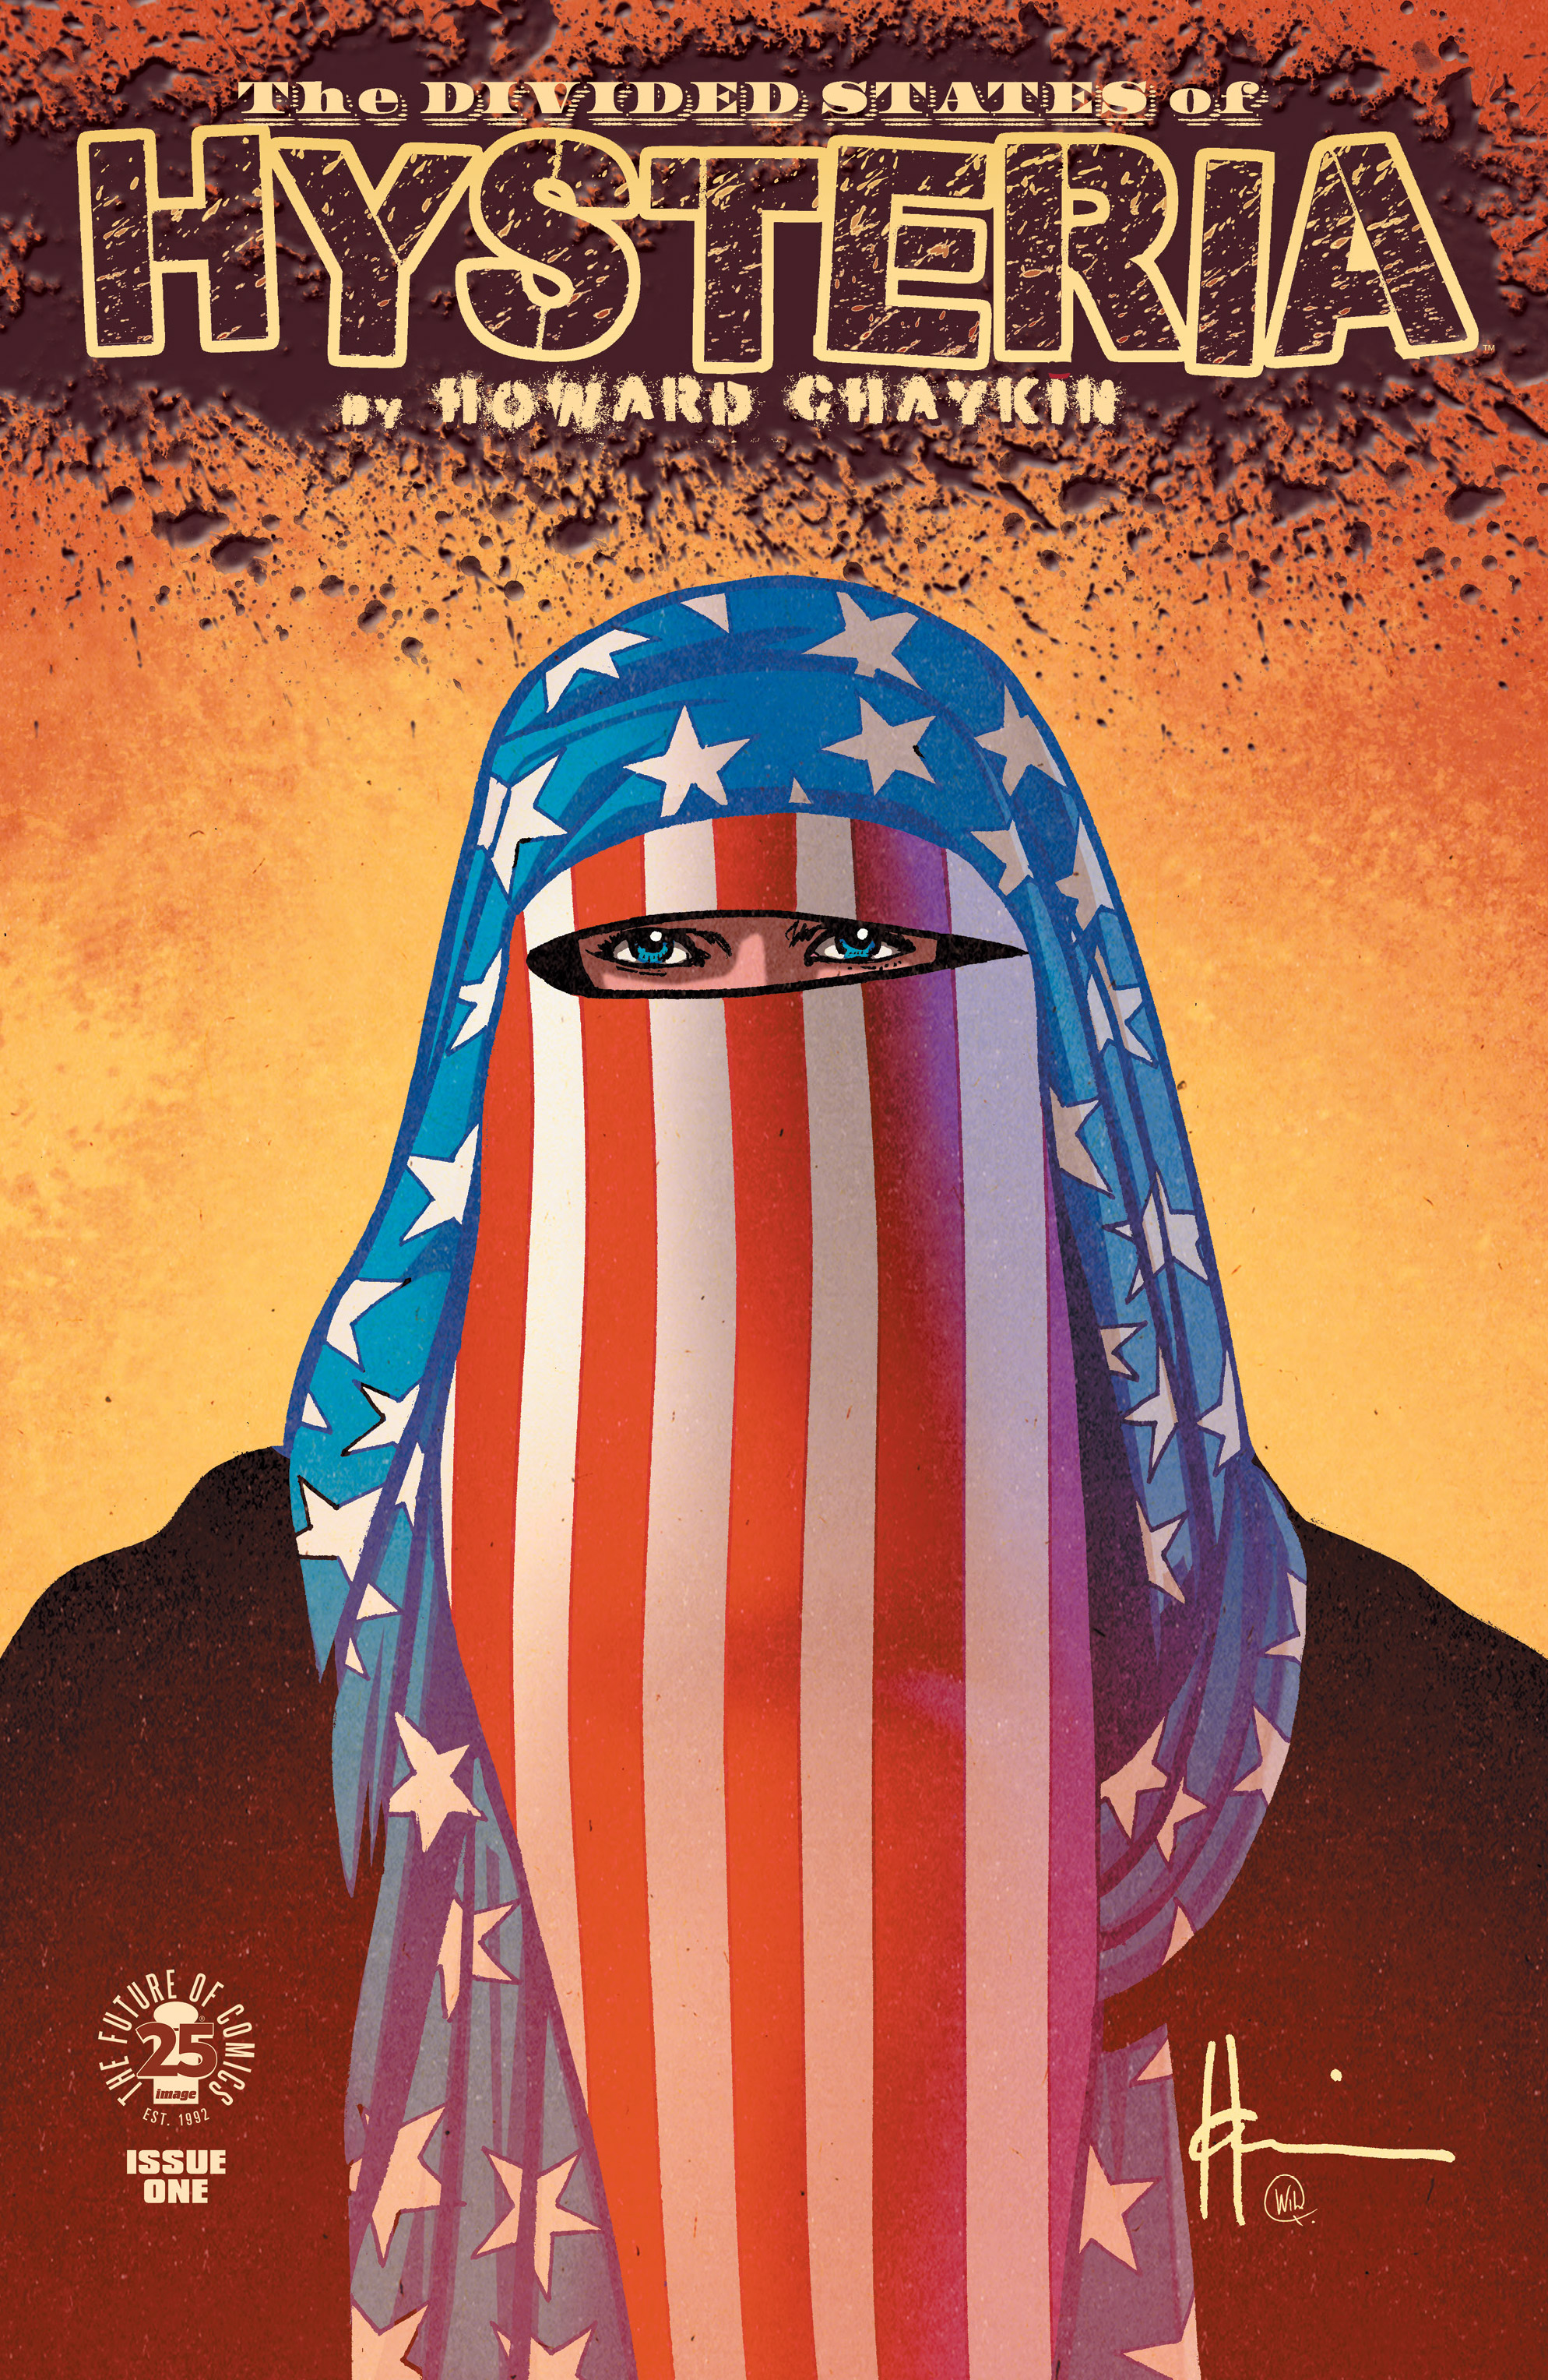 Read online The Divided States of Hysteria comic -  Issue #1 - 1